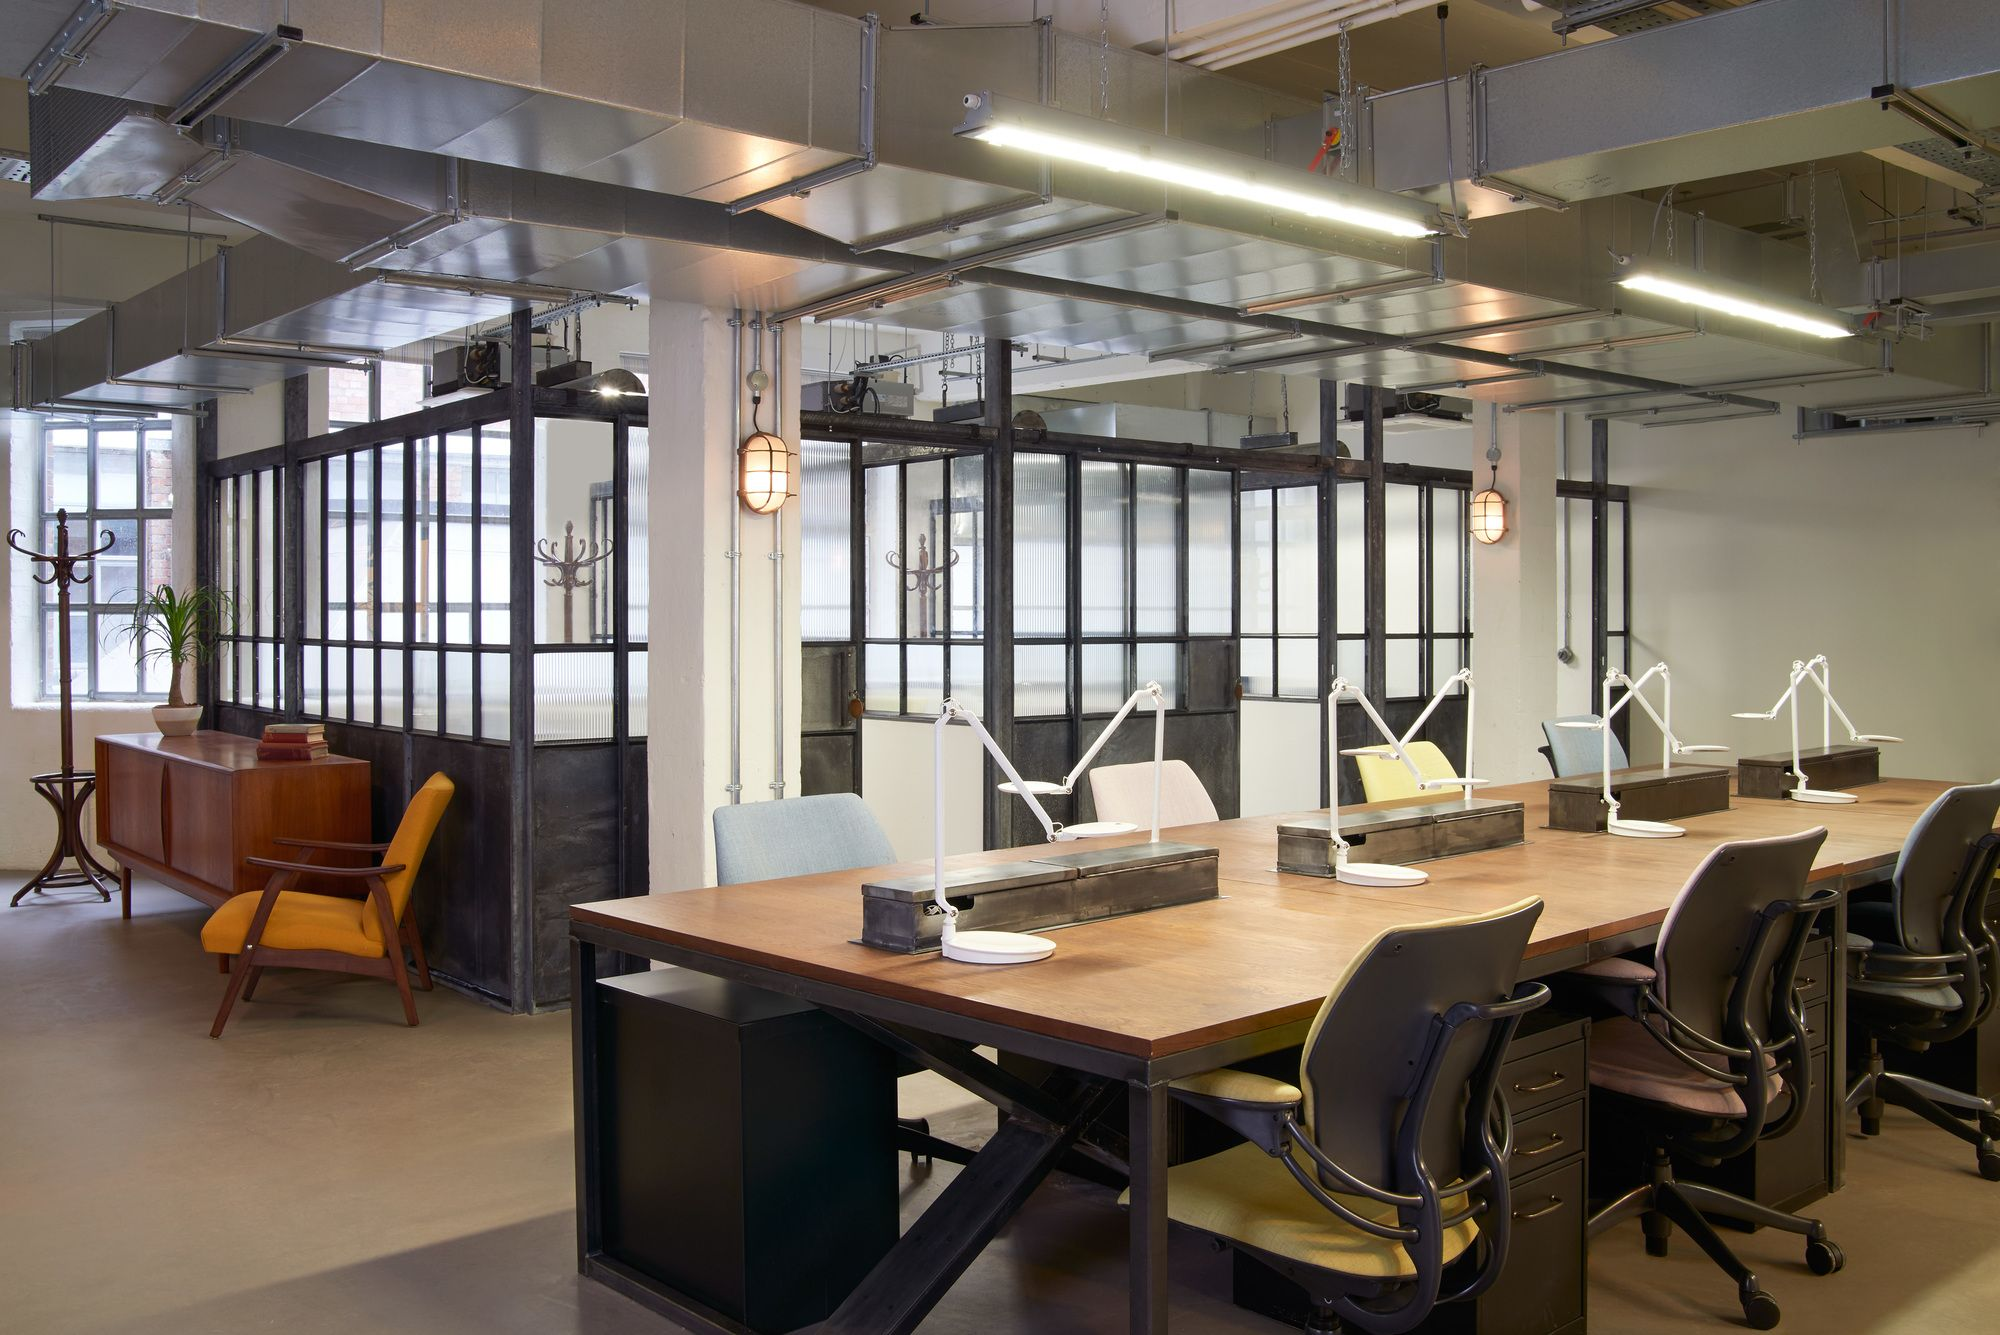 Pin de victoria pustynsky en aurora offices pinterest for Diseno oficinas industriales